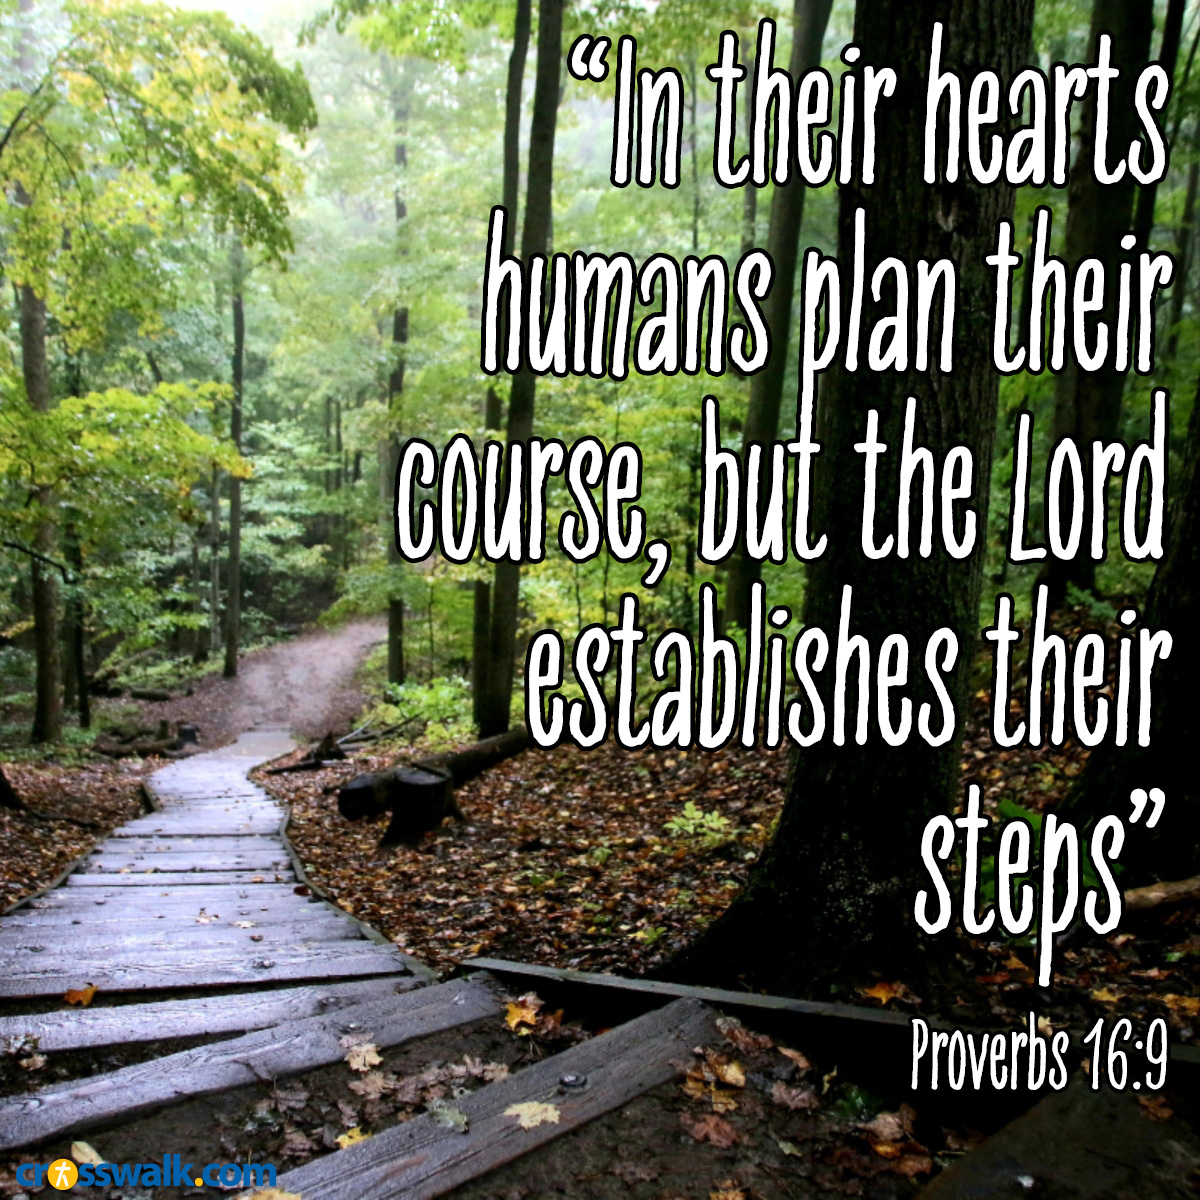 Proverbs 16:9 sq